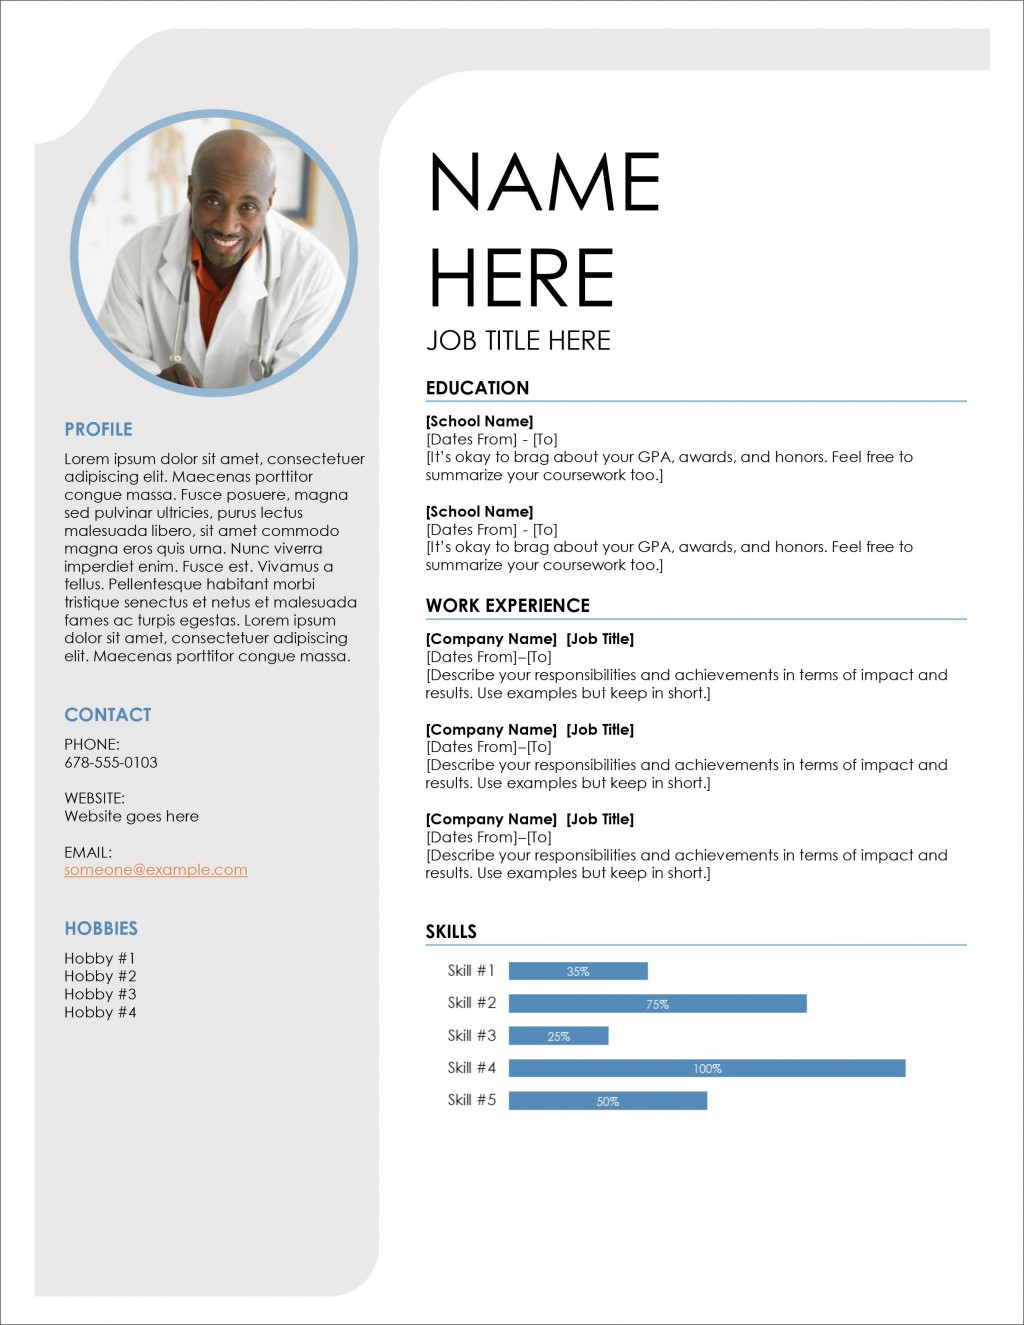 007 Awful Resume Template Download Free Photo  Word 2018 Page PdfLarge